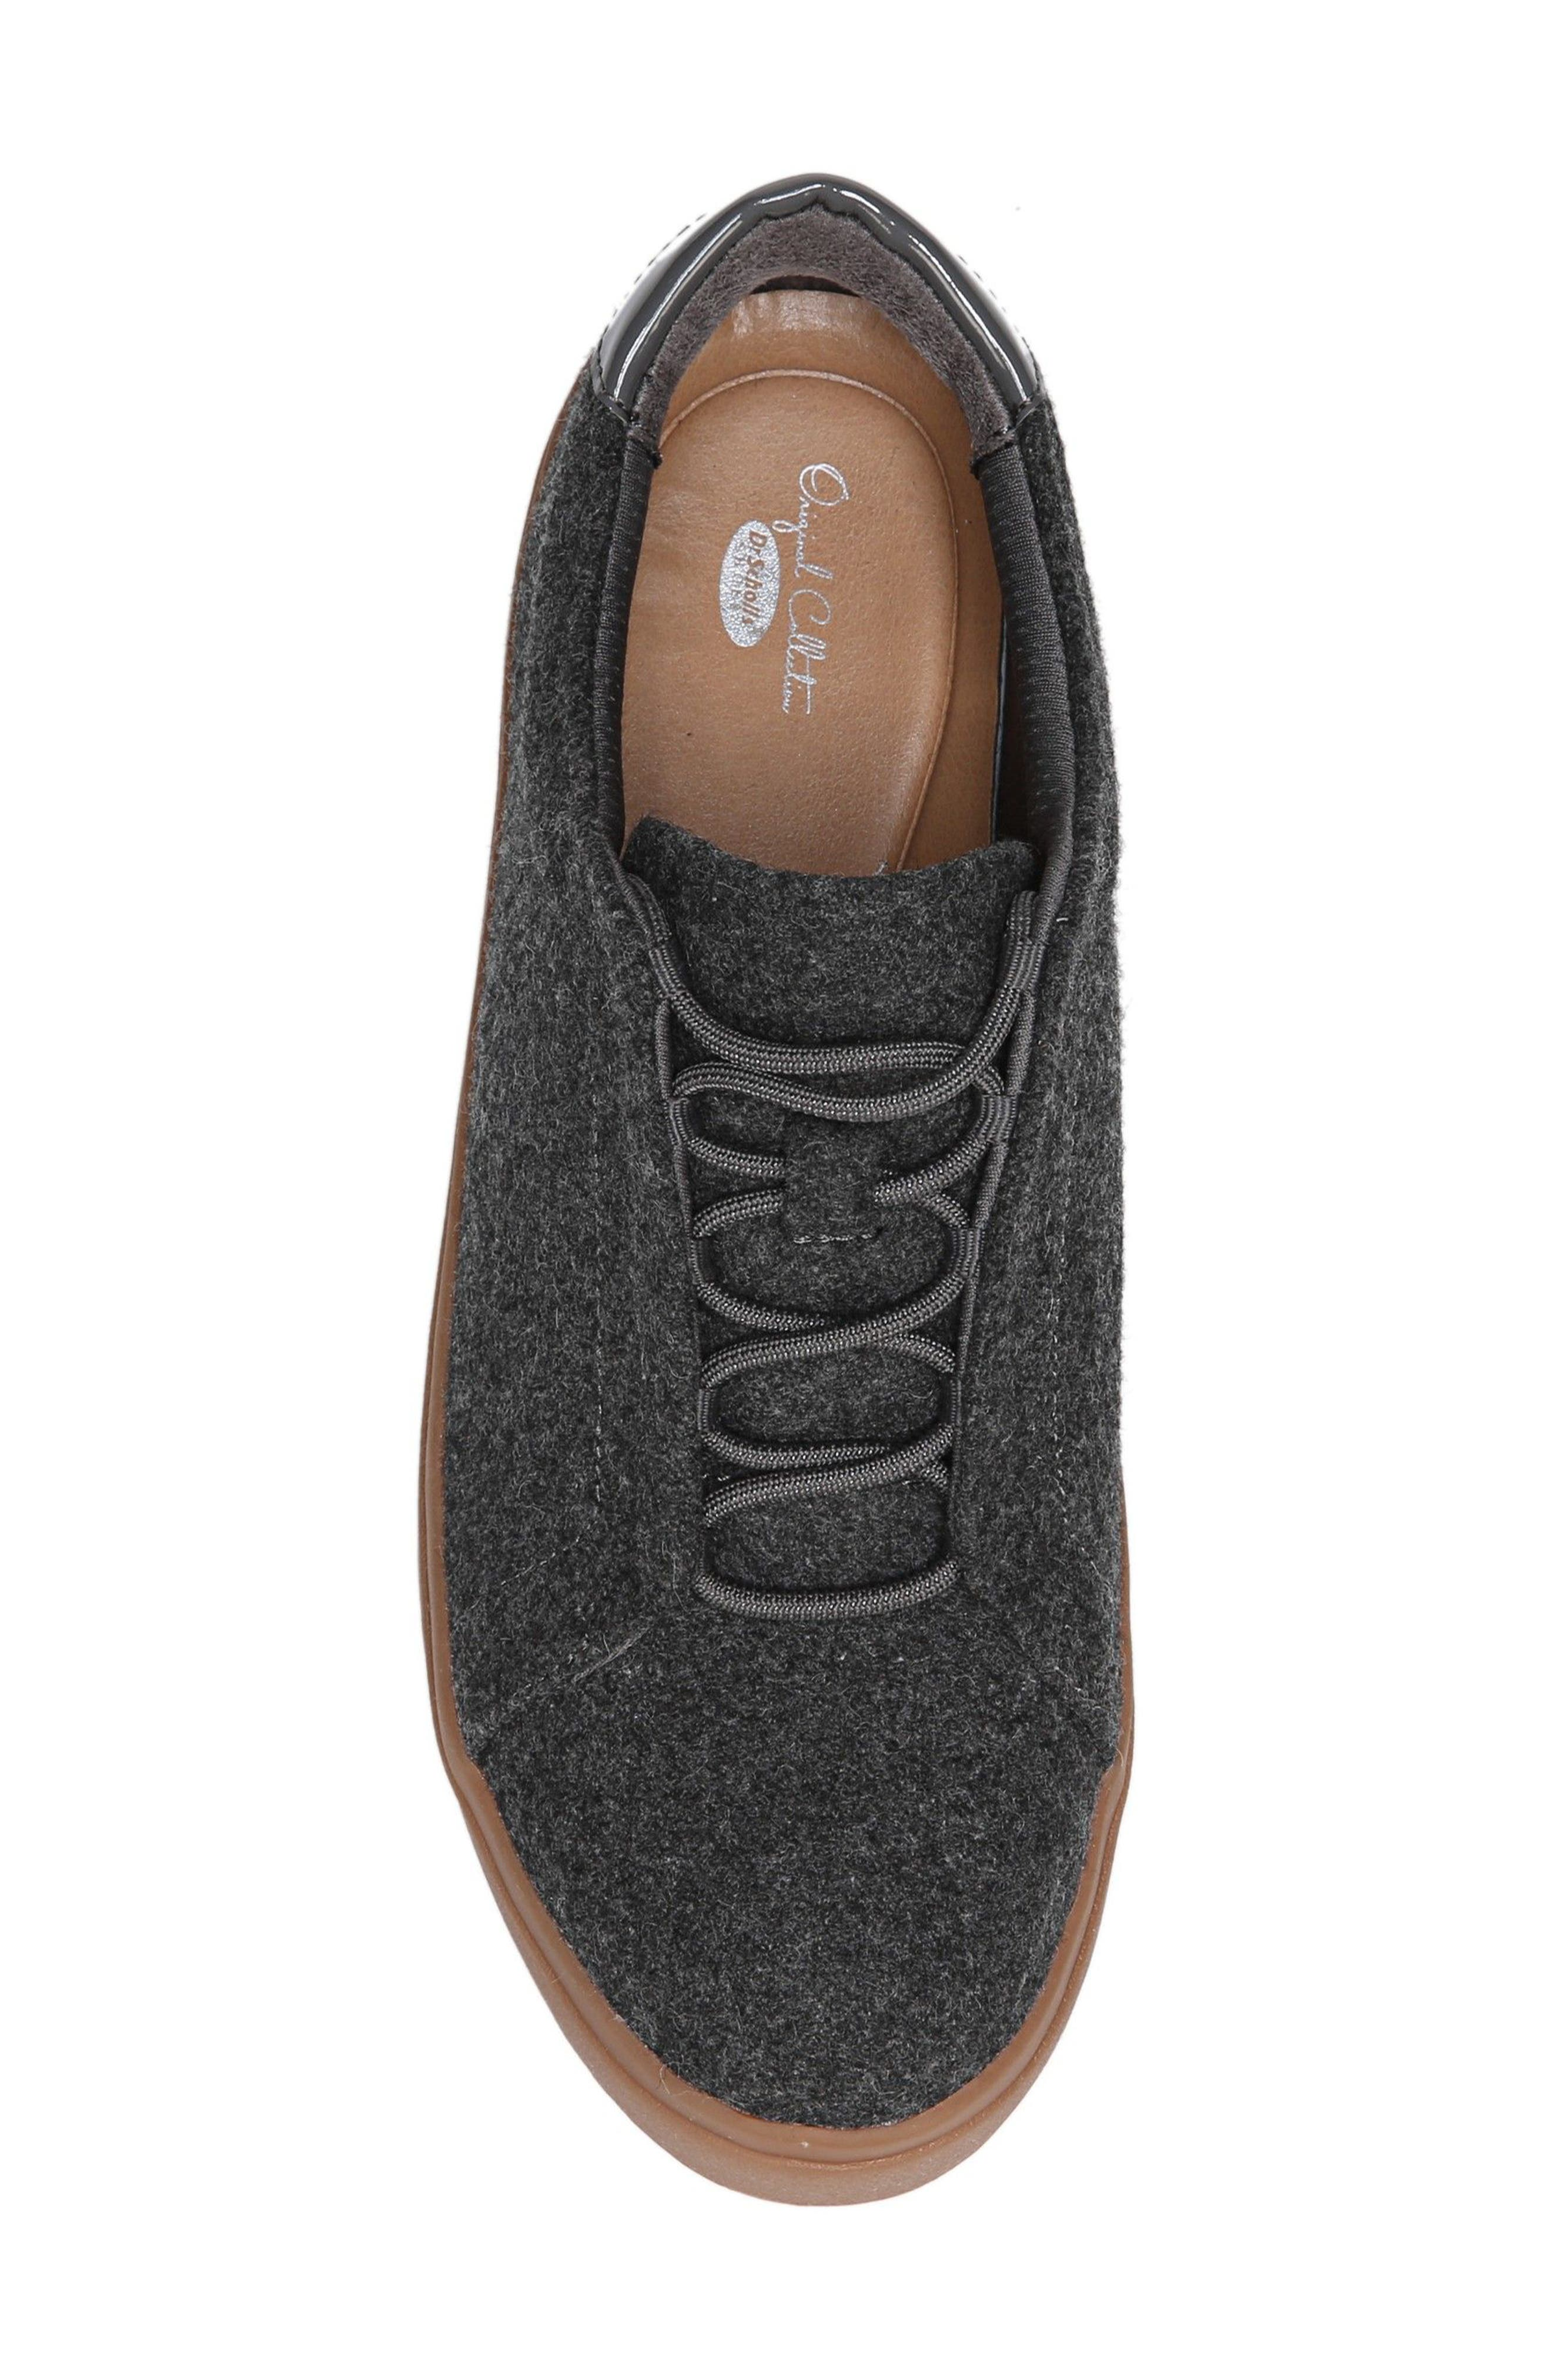 Abbot Sneaker,                             Alternate thumbnail 5, color,                             Charcoal Fabric